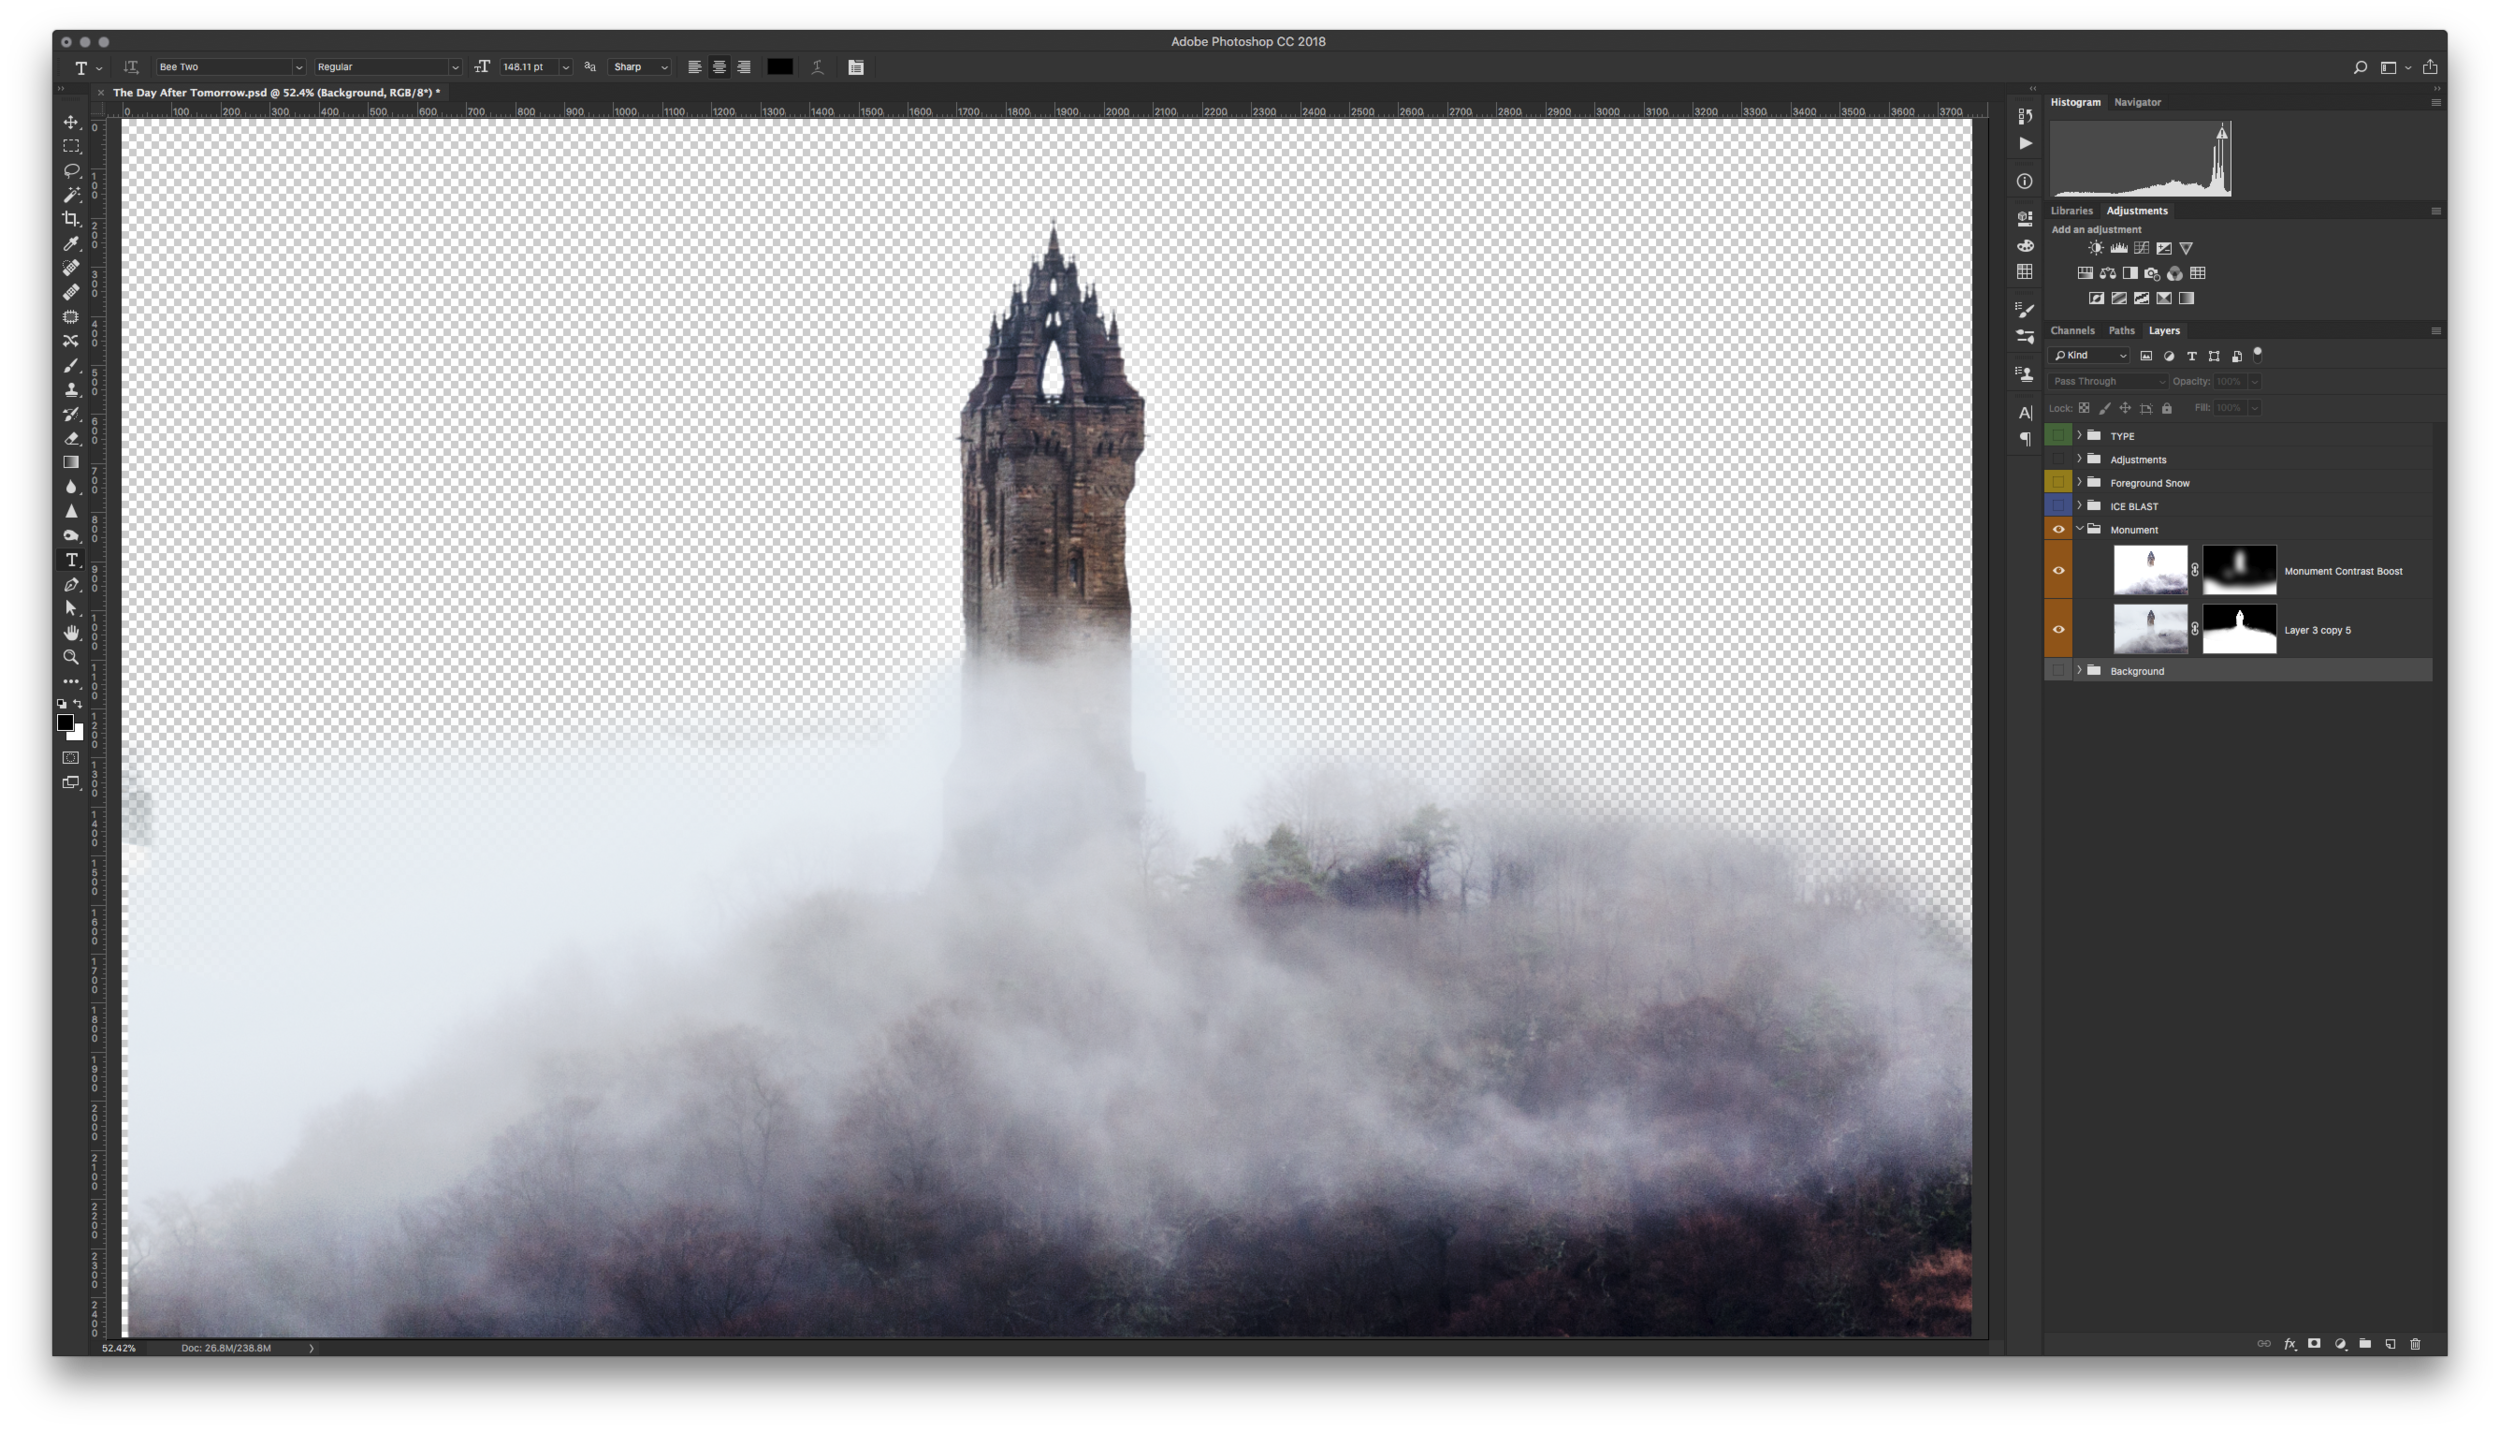 Found a misty and moody shot of the  Wallace Monument  and again used the Select and Mask.. feature to remove the sky. The layer was then duplicated, its blend mode changed to Multiply and tweaked to increase the contrast for amore exaggerated effect.